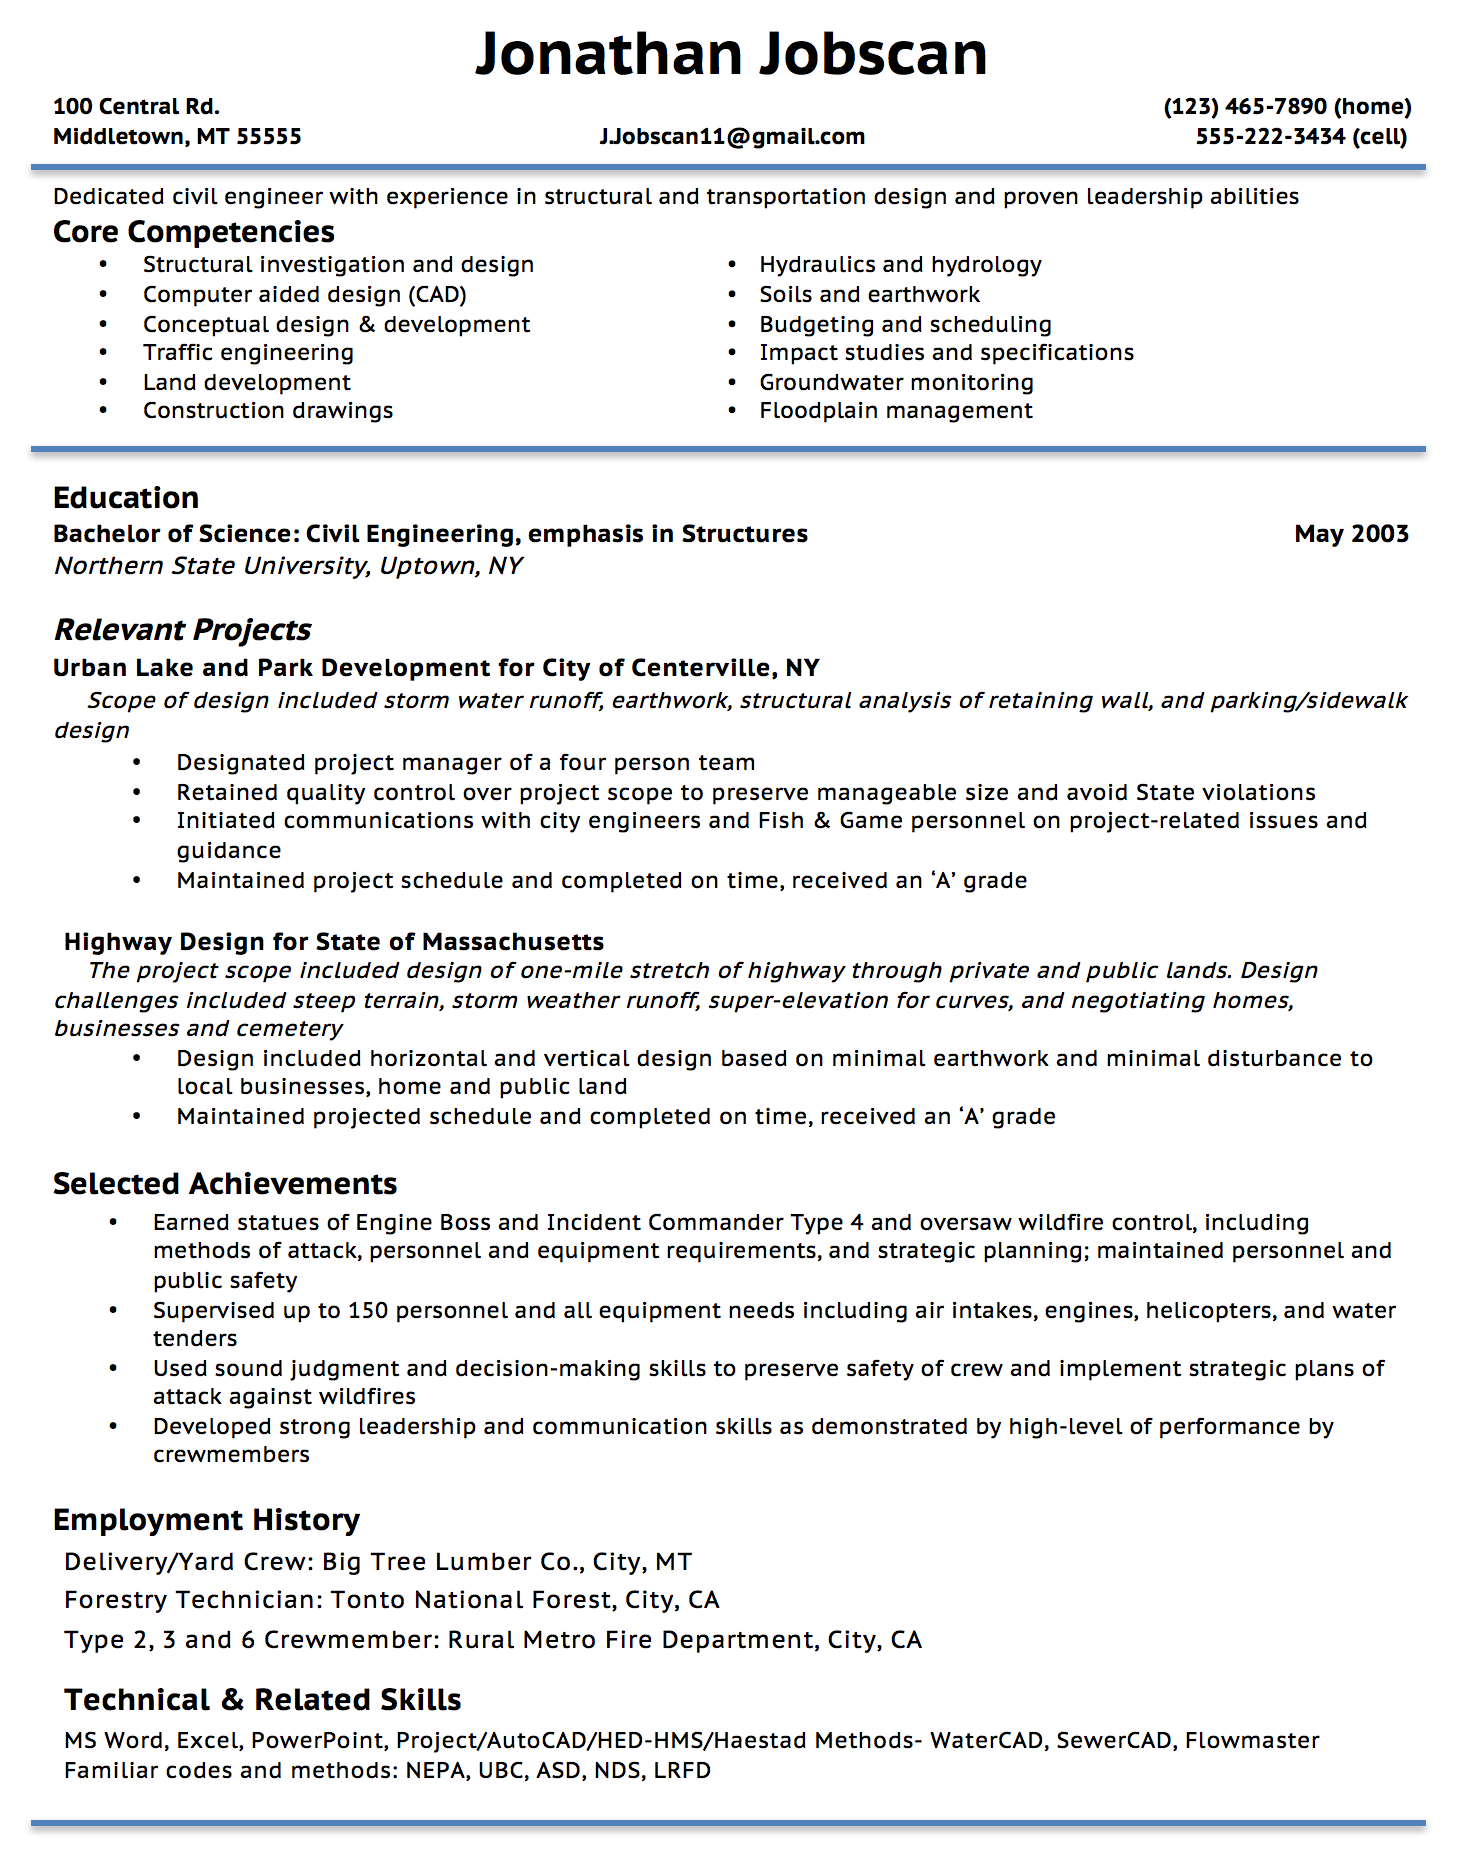 Opposenewapstandardsus  Outstanding Resume Writing Guide  Jobscan With Gorgeous Example Of A Functional Resume Format With Appealing Dentist Resume Also Microsoft Resume In Addition How To Write A Federal Resume And Completely Free Resume Builder As Well As Free Resume Maker Online Additionally What Is A Resume Title From Jobscanco With Opposenewapstandardsus  Gorgeous Resume Writing Guide  Jobscan With Appealing Example Of A Functional Resume Format And Outstanding Dentist Resume Also Microsoft Resume In Addition How To Write A Federal Resume From Jobscanco